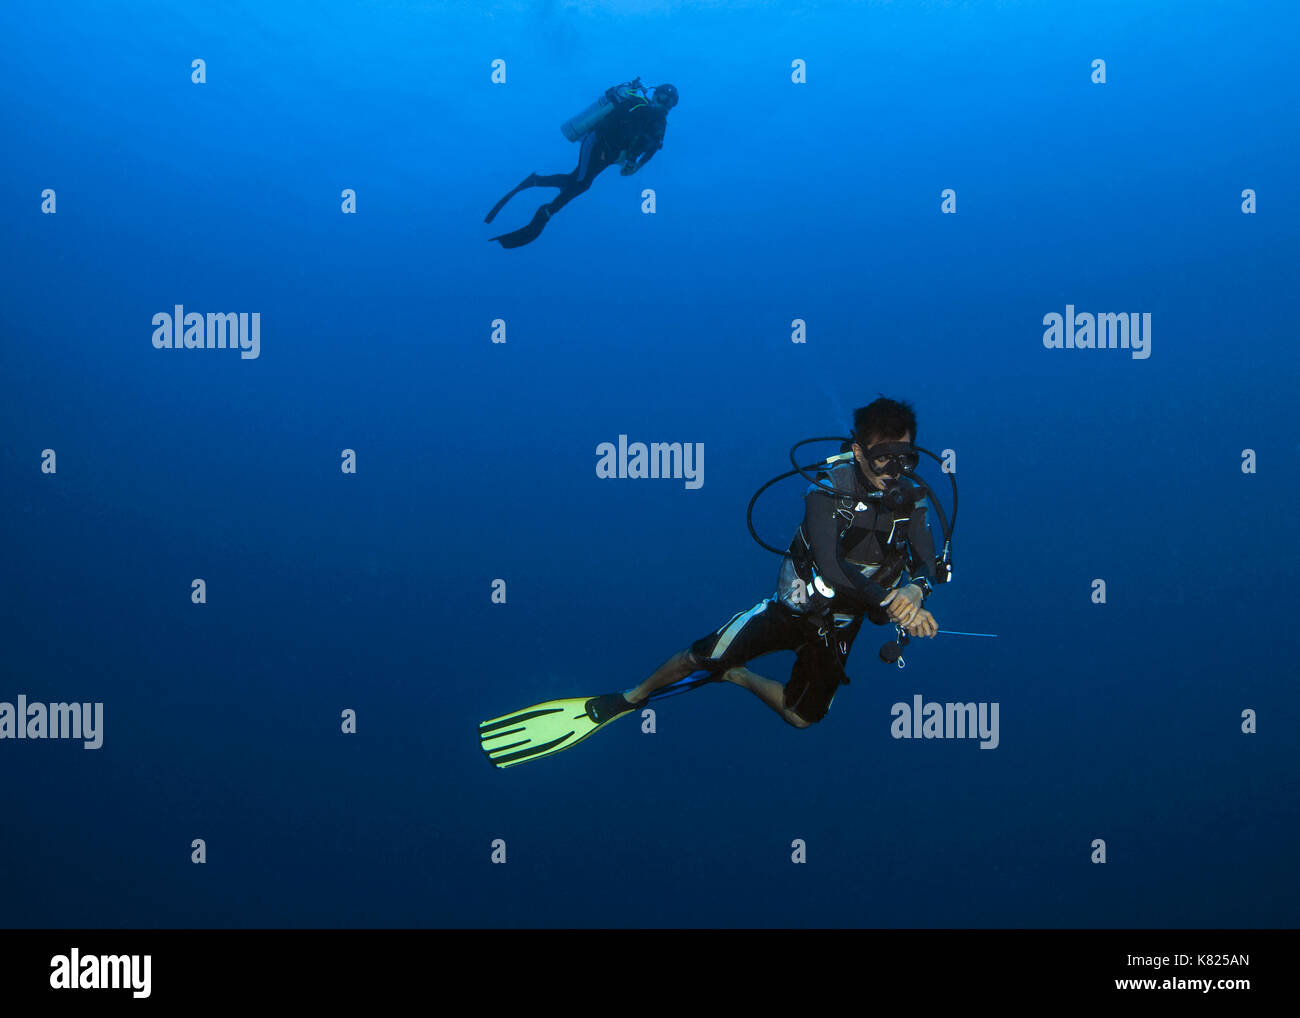 Malaysian dive master leads scuba diver into the deep blue in search of pelagic marine wildlife. Spratly Islands, South China Sea. - Stock Image